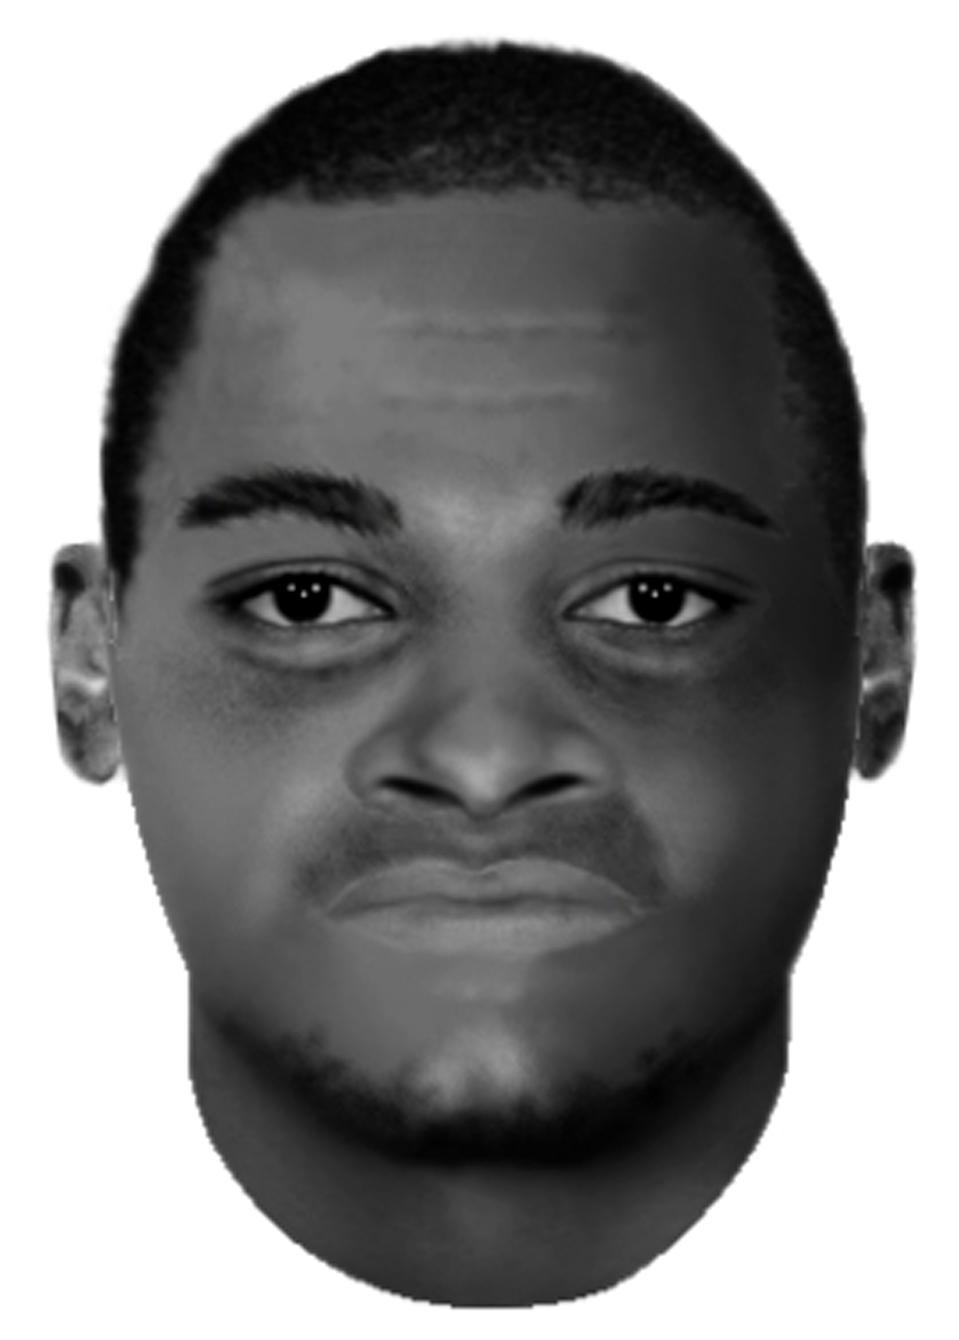 <p> This E-FIT image (Electronic Facial Identification Technique) provided by the Metropolitan Police on Dec. 7, 2012 show a computer-based face of a man whom British police are trying to identify after his body was found near London's Heathrow Airport in September. Police believe he was from Africa, probably from Angola, but they don't know his identity, or how to notify his next of kin. The apparent stowaway had no identification papers - just some currency from Angola, leading police to surmise that he was from that African nation, especially as inquiries showed that a plane from Angola was beginning its descent into Heathrow at about that time. (AP Photo/Metropolitan Police) </p>